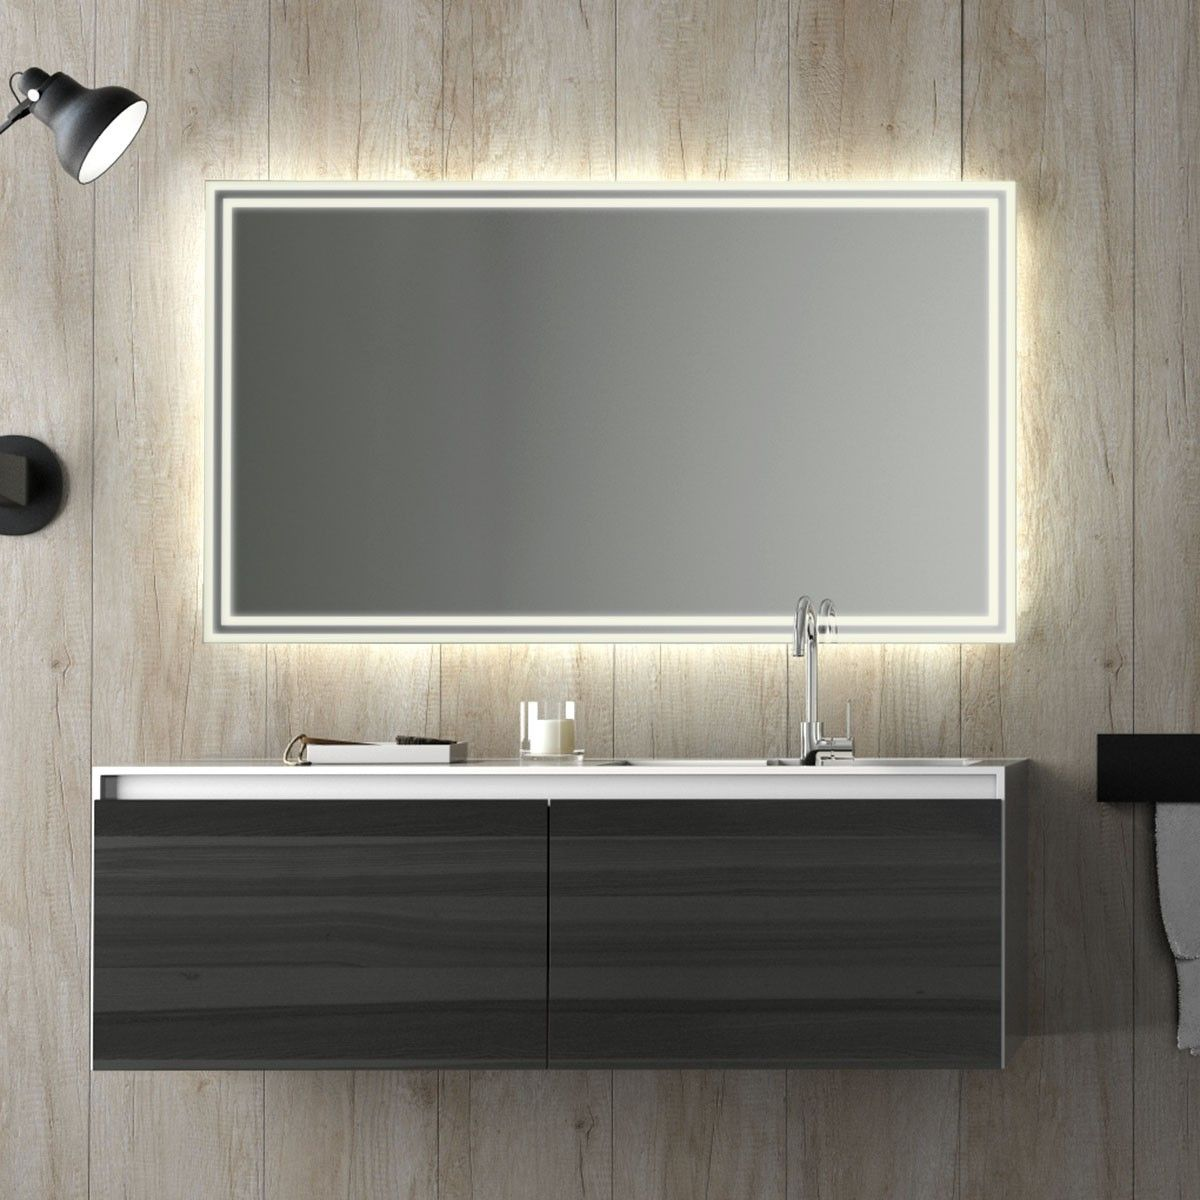 Badezimmerspiegel Online Lichtspiegel Milsan Baeder Bathroom Lighting Mirror Und Bathroom